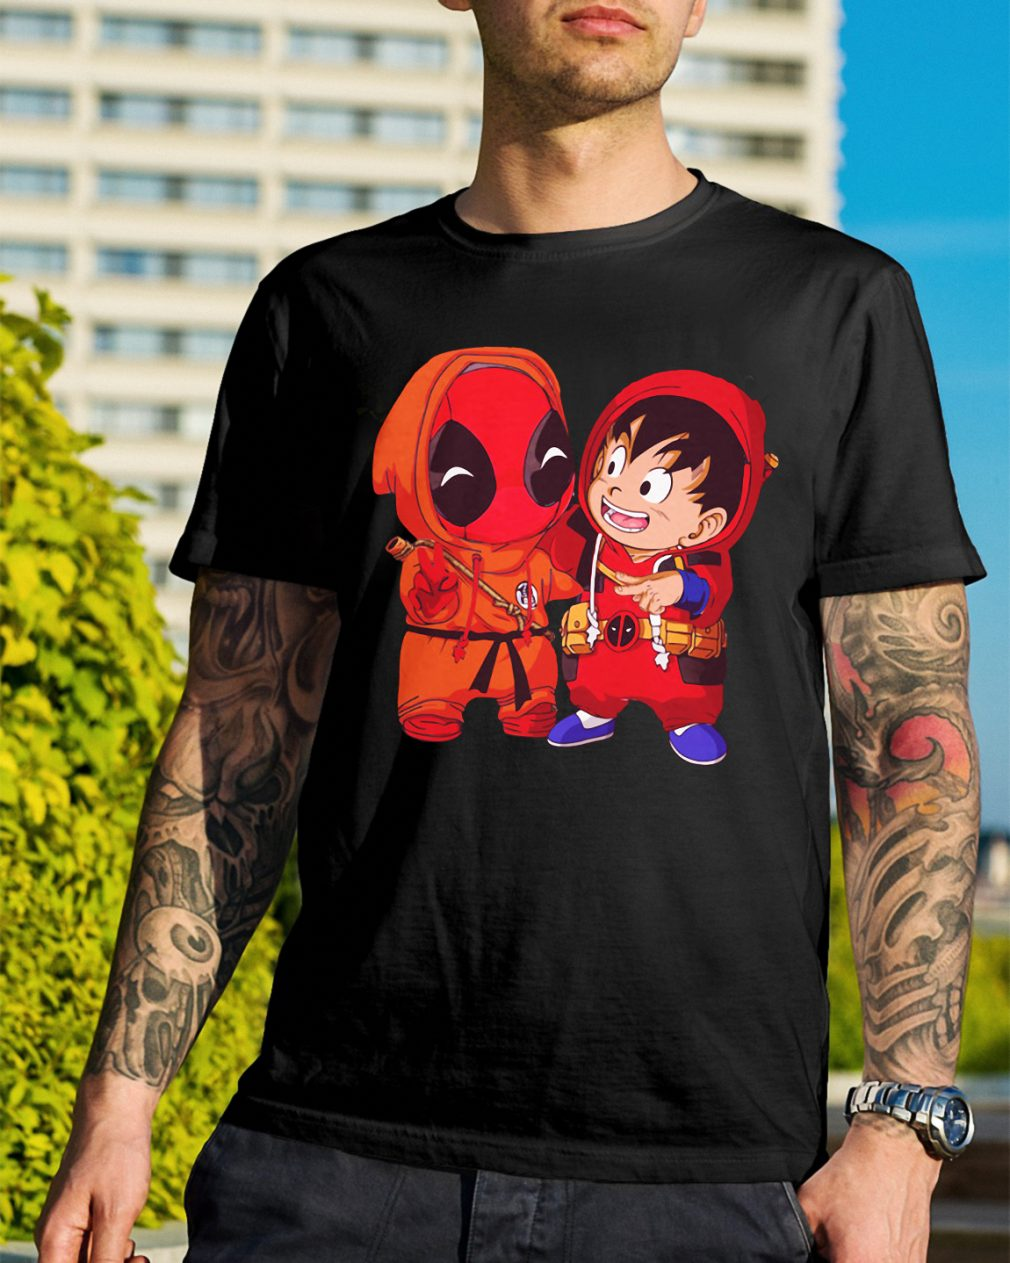 Deadpool and Goku kid shirt